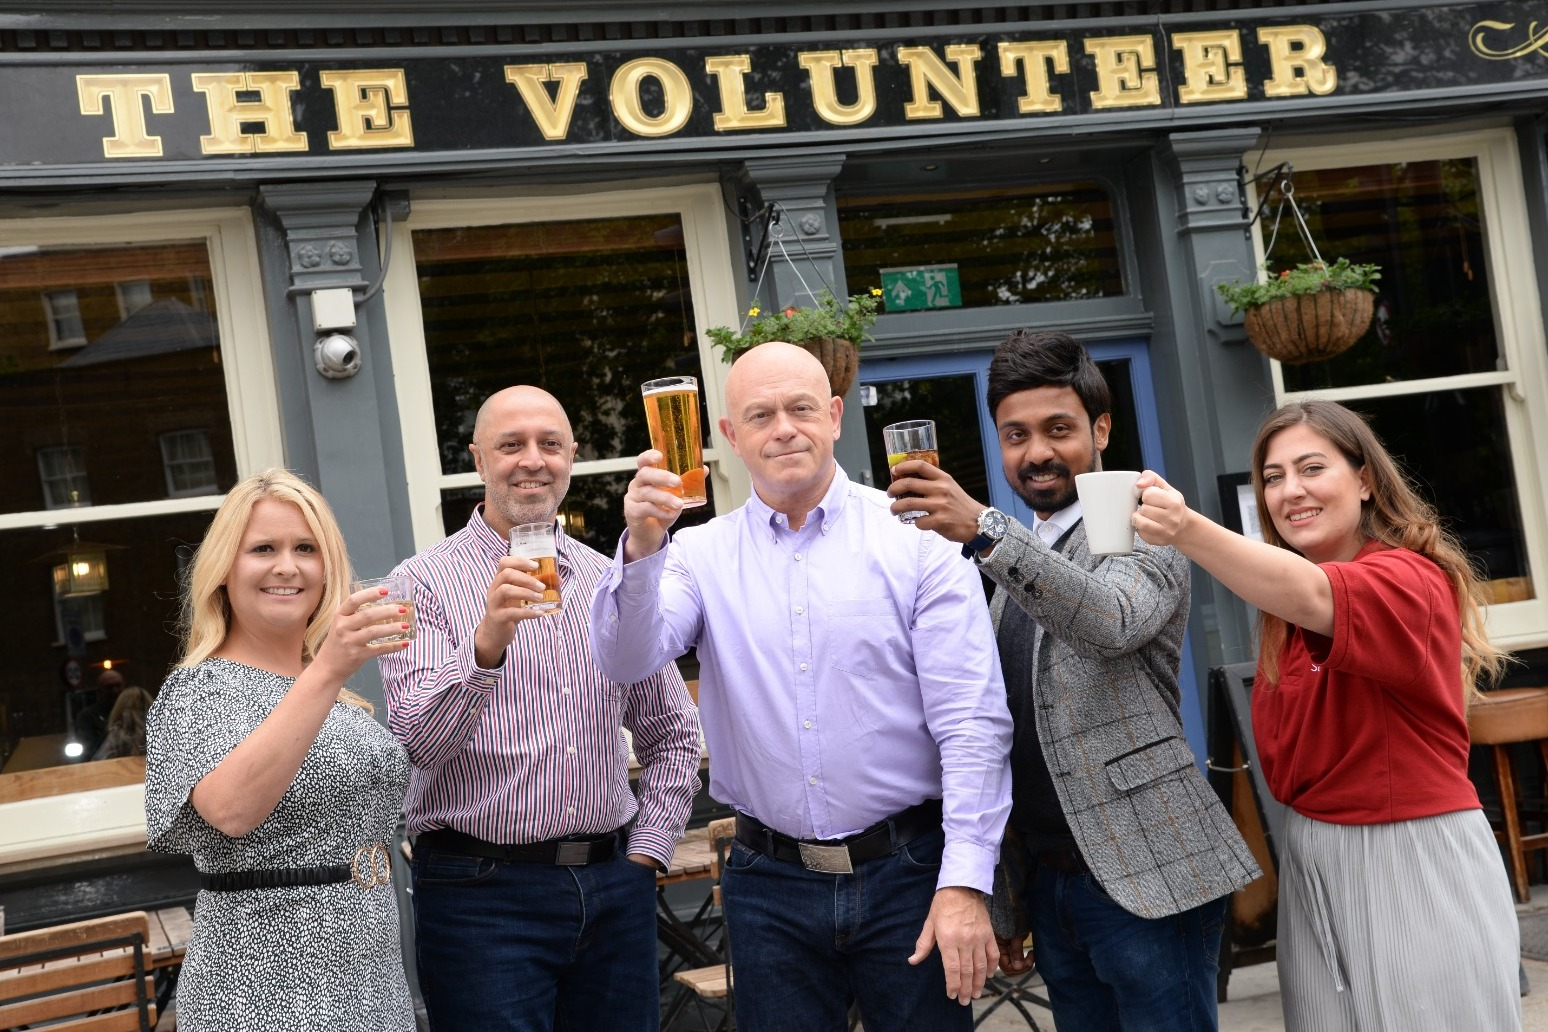 Ross Kemp launches campaign to thank volunteers for helping during the pandemic